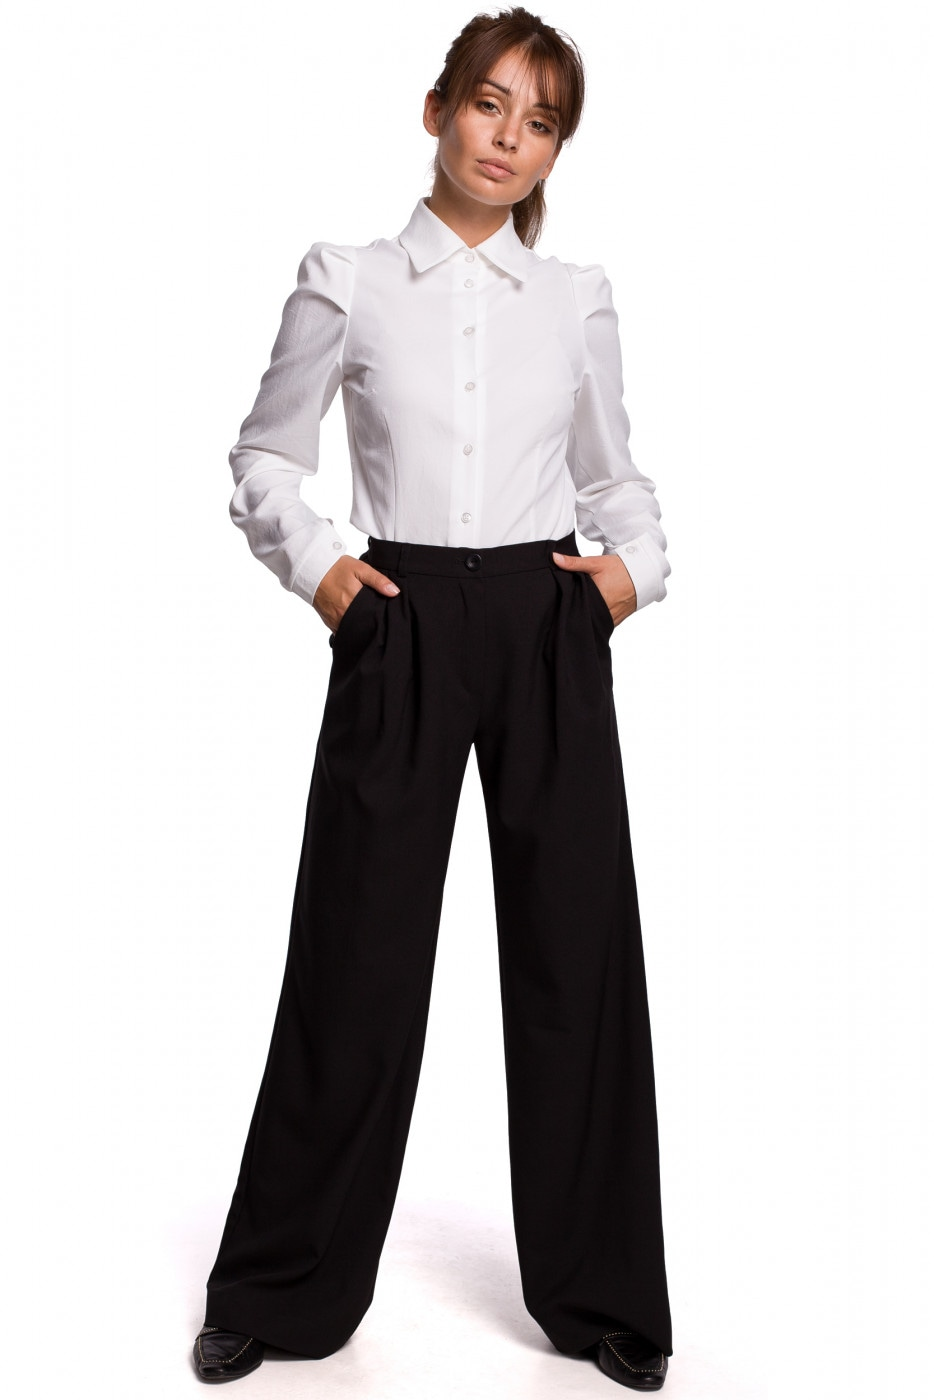 BeWear Woman's Trousers B164